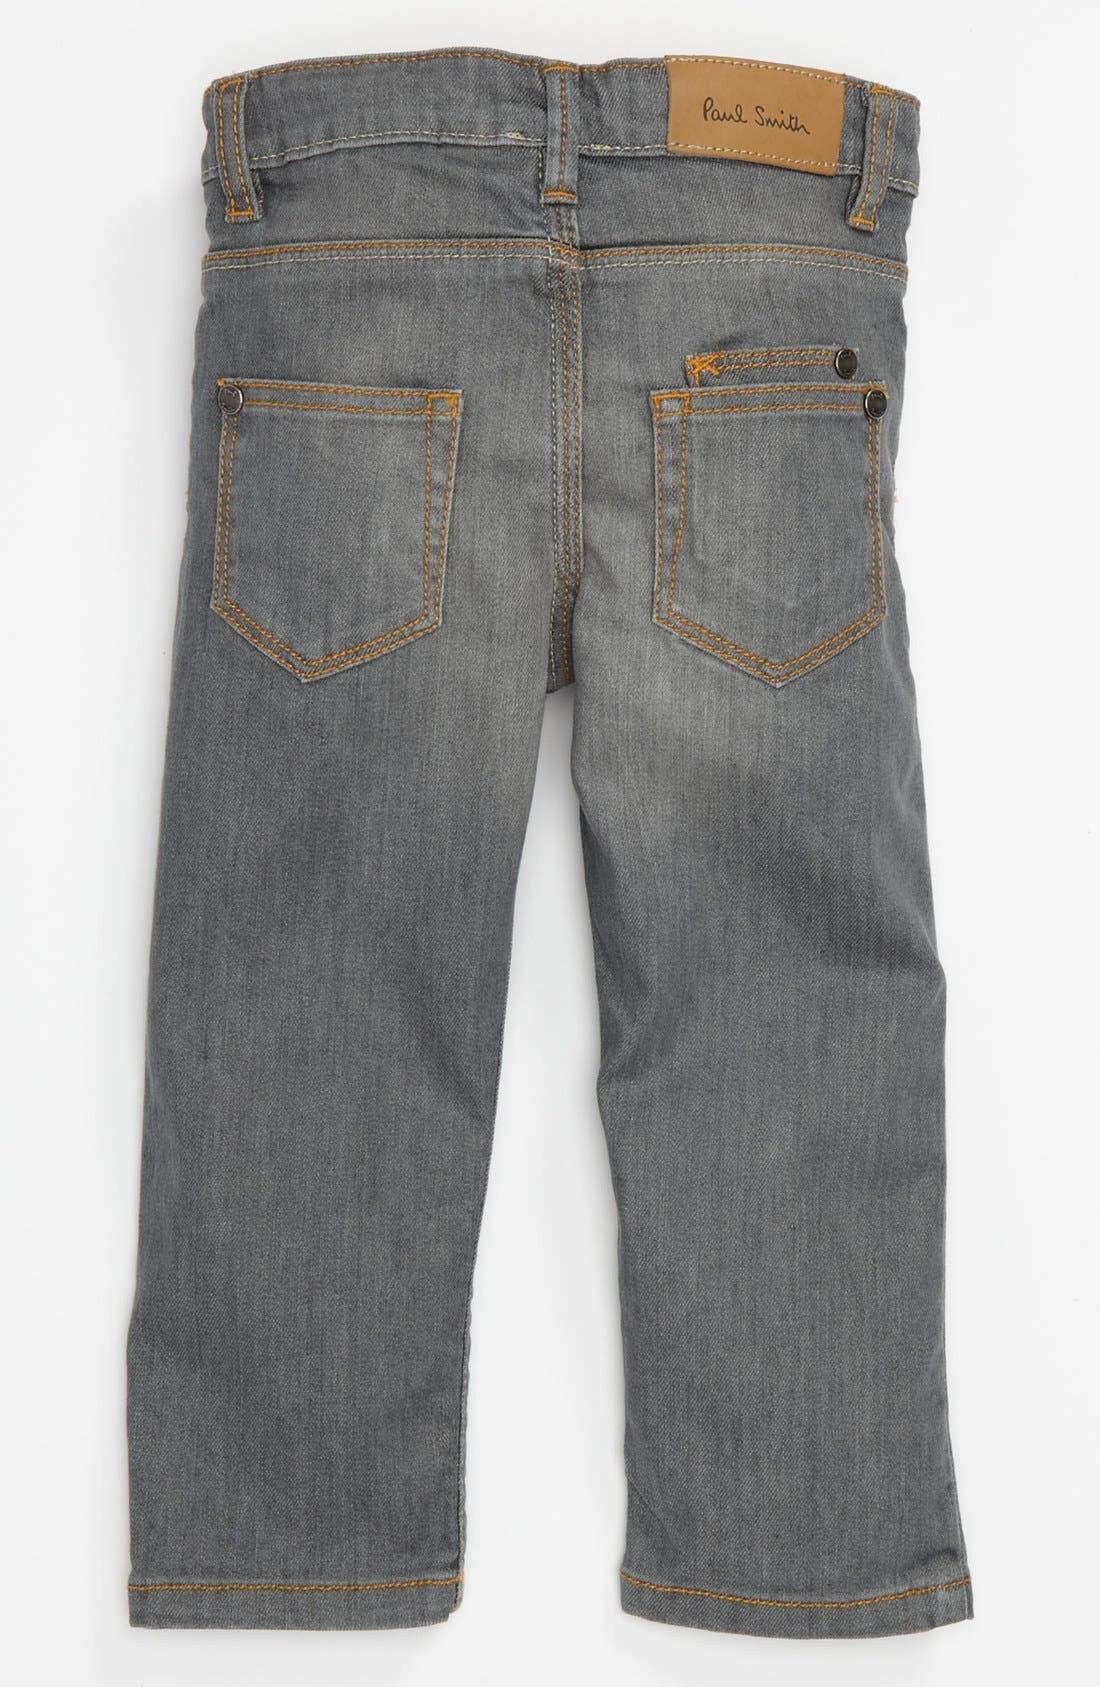 Main Image - Paul Smith Junior Straight Leg Jeans (Baby)